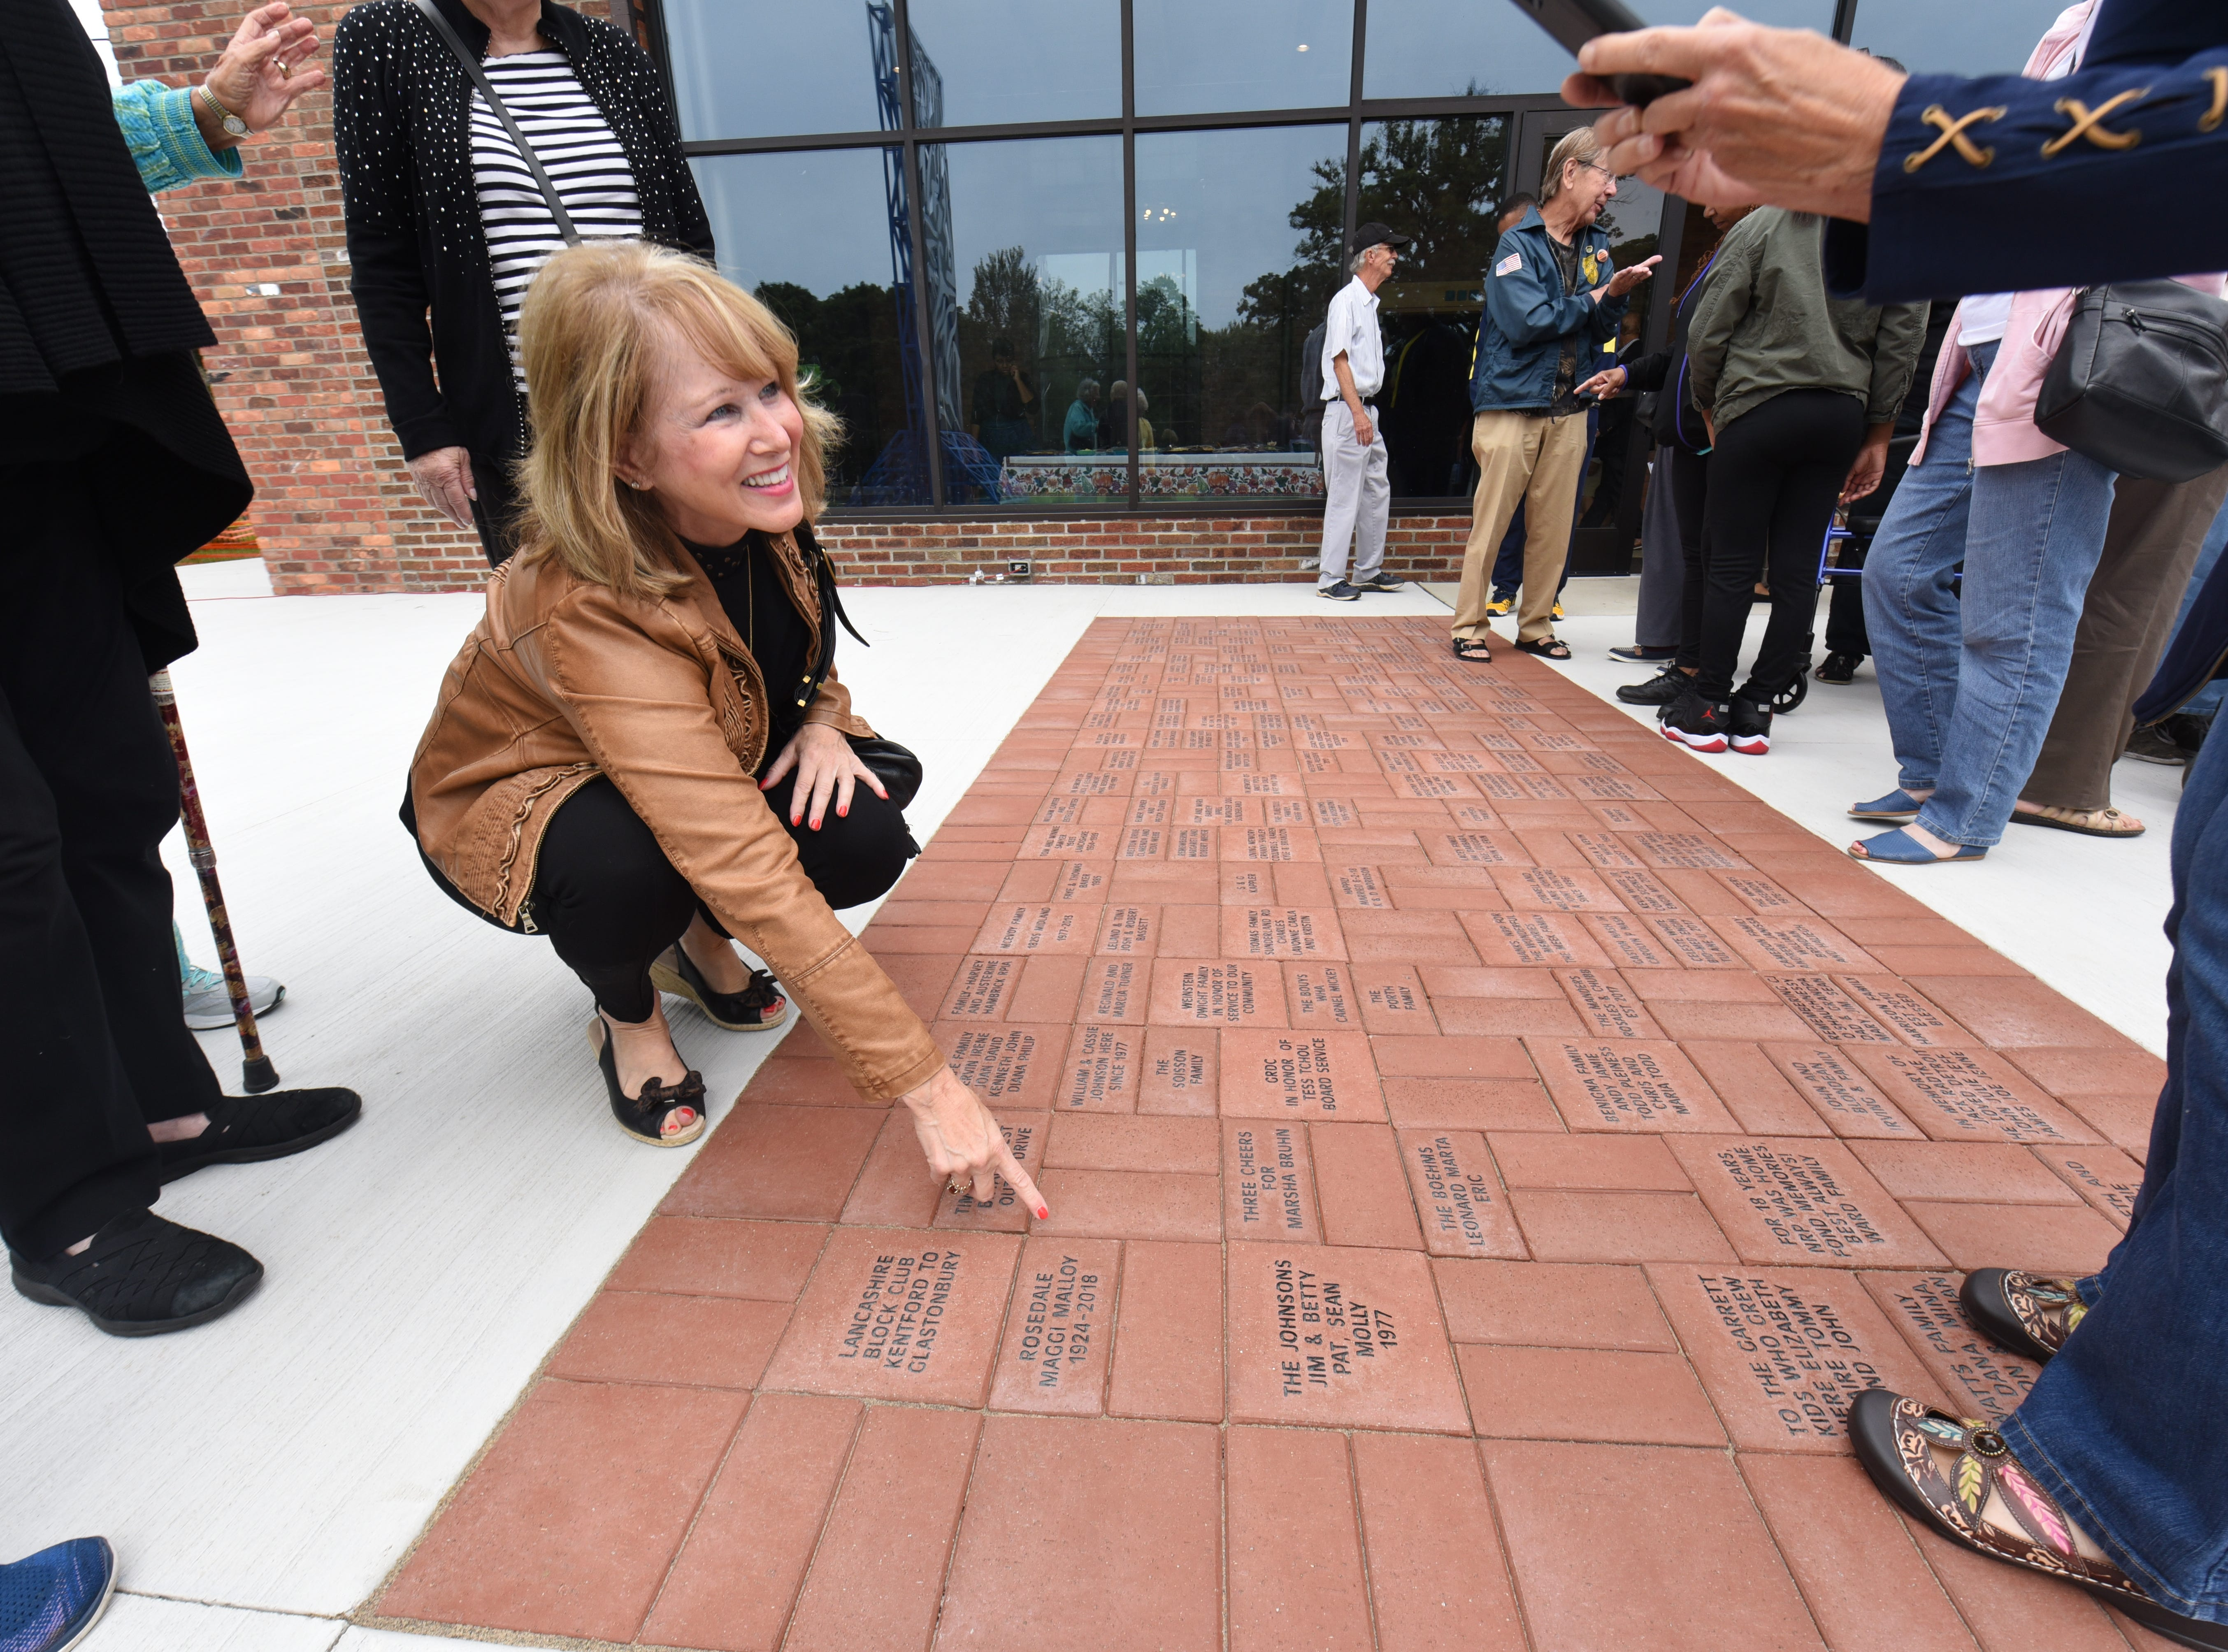 Carole Layne of Livonia points to a memorial engraved brick paver installed outside the Community House at North Rosedale Park in Detroit.